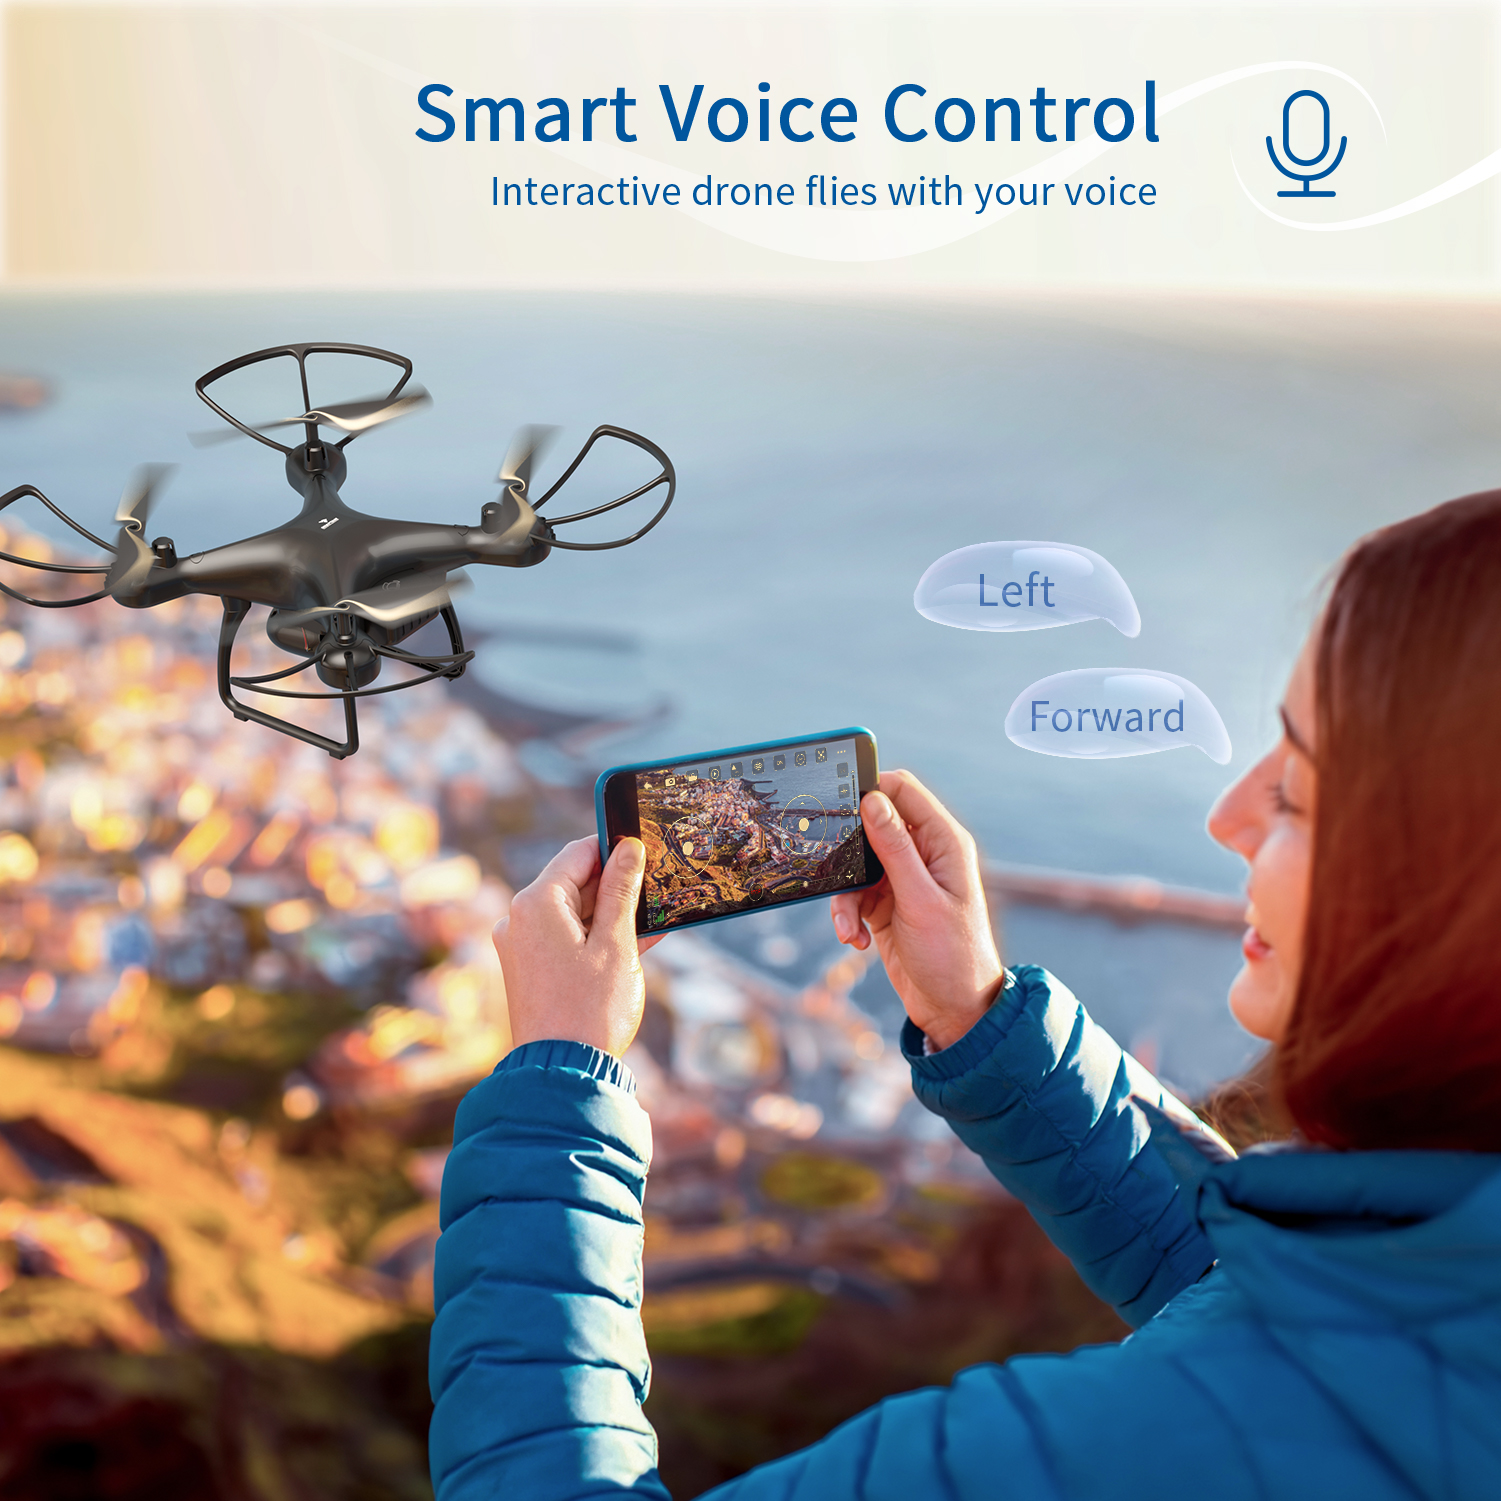 SNAPTAIN SP650 Drone 2-Axis Gimbal Camera 2K HD Video Camera Drone Voice Gesture Control Wide Angle Foldable Quadcopter RC dron 5